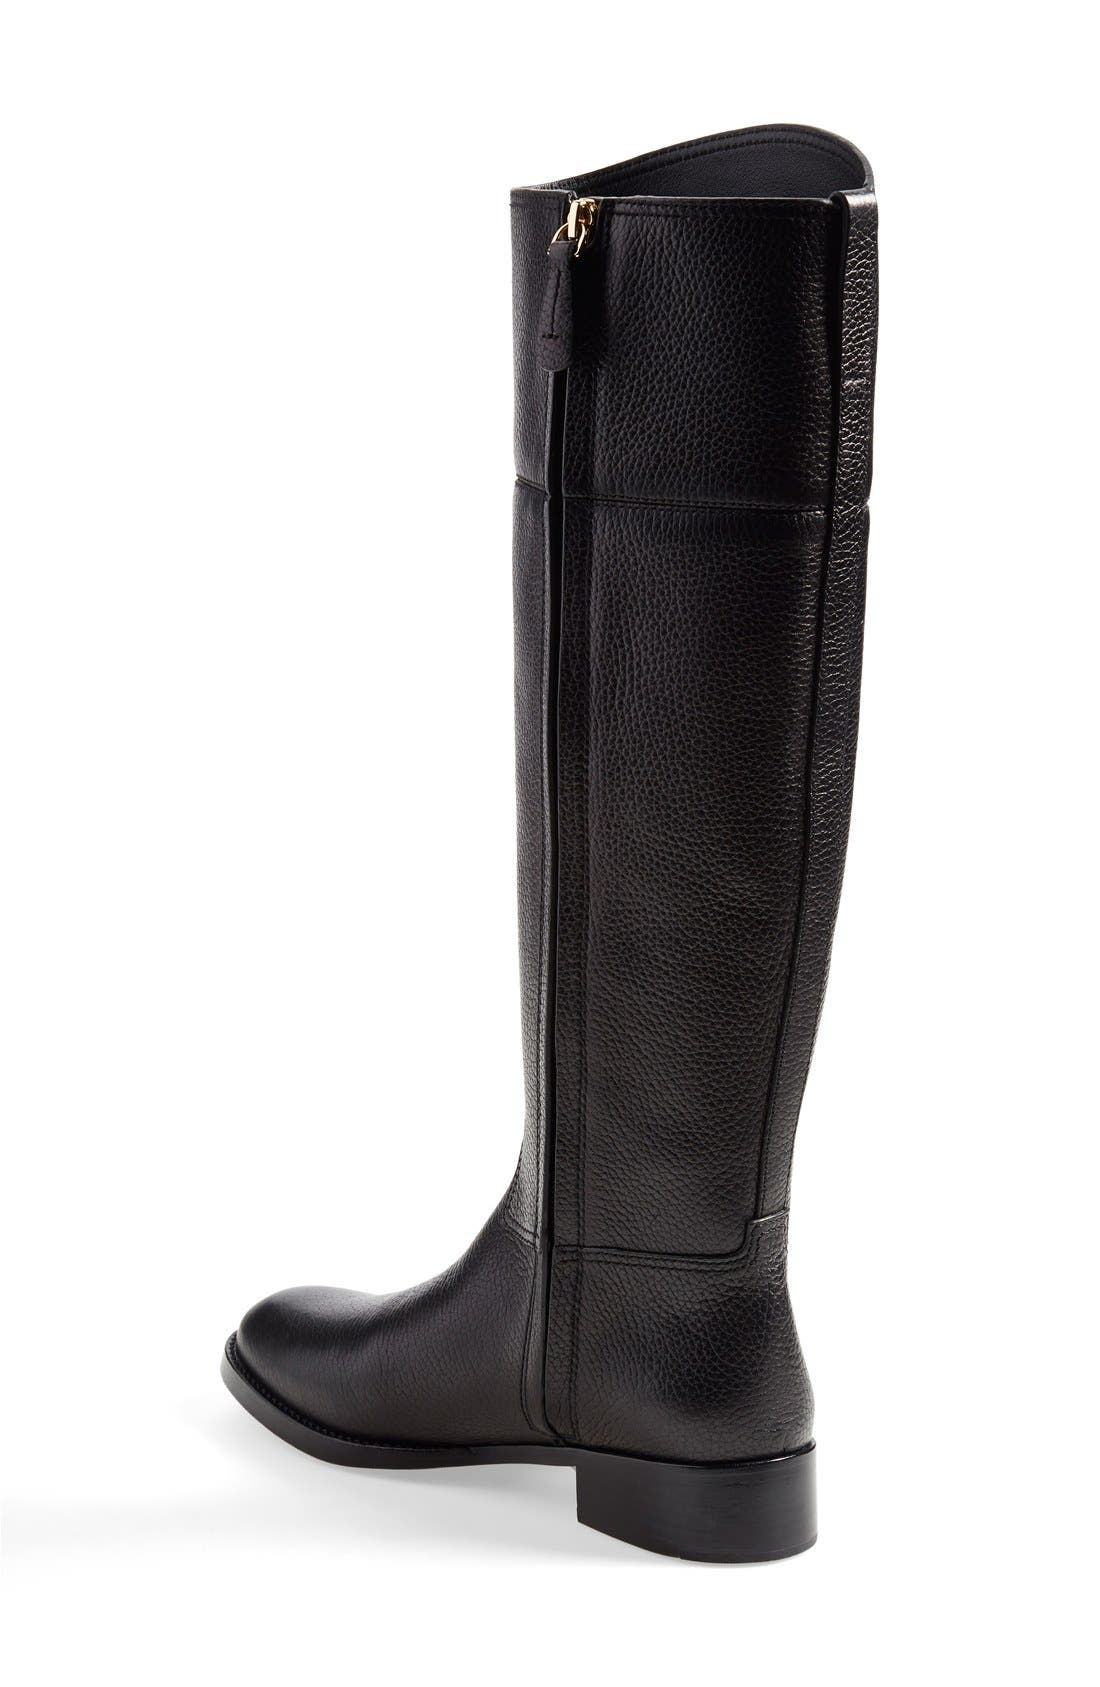 TORY BURCH,                             'Junction' Riding Boot,                             Alternate thumbnail 3, color,                             001